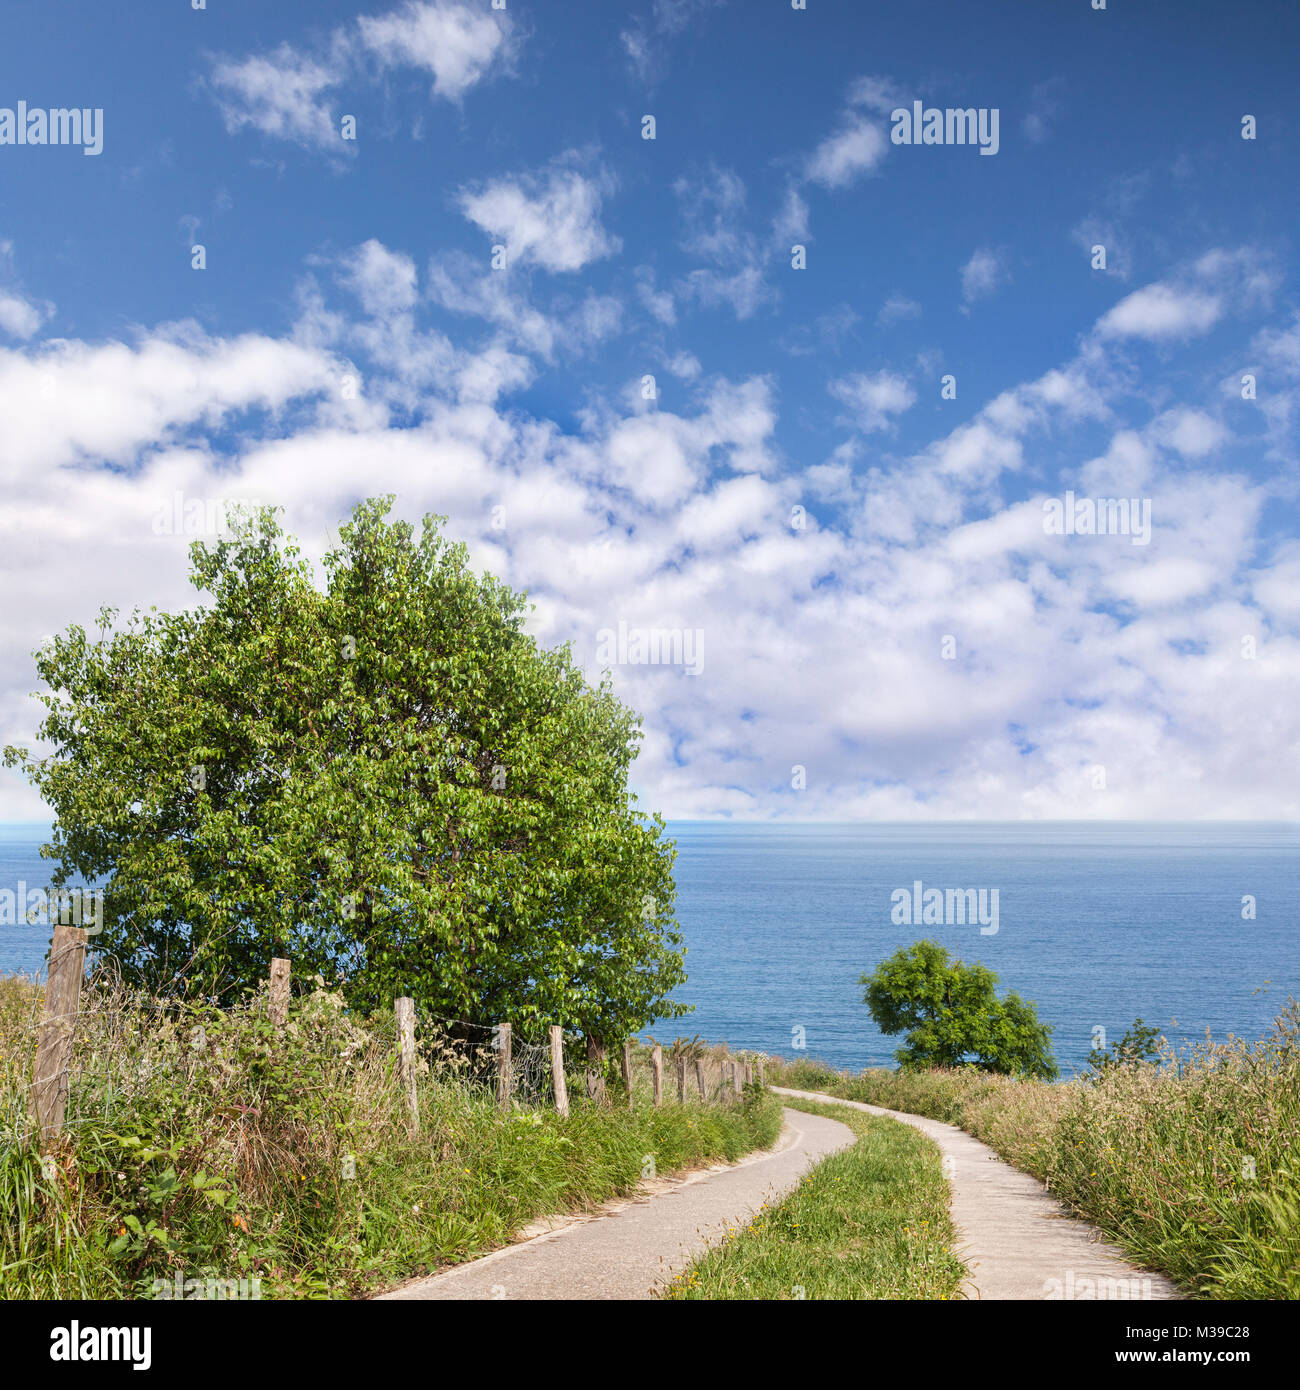 Path to sea, generic landscape or seascape in the Basque Country, Spain. - Stock Image